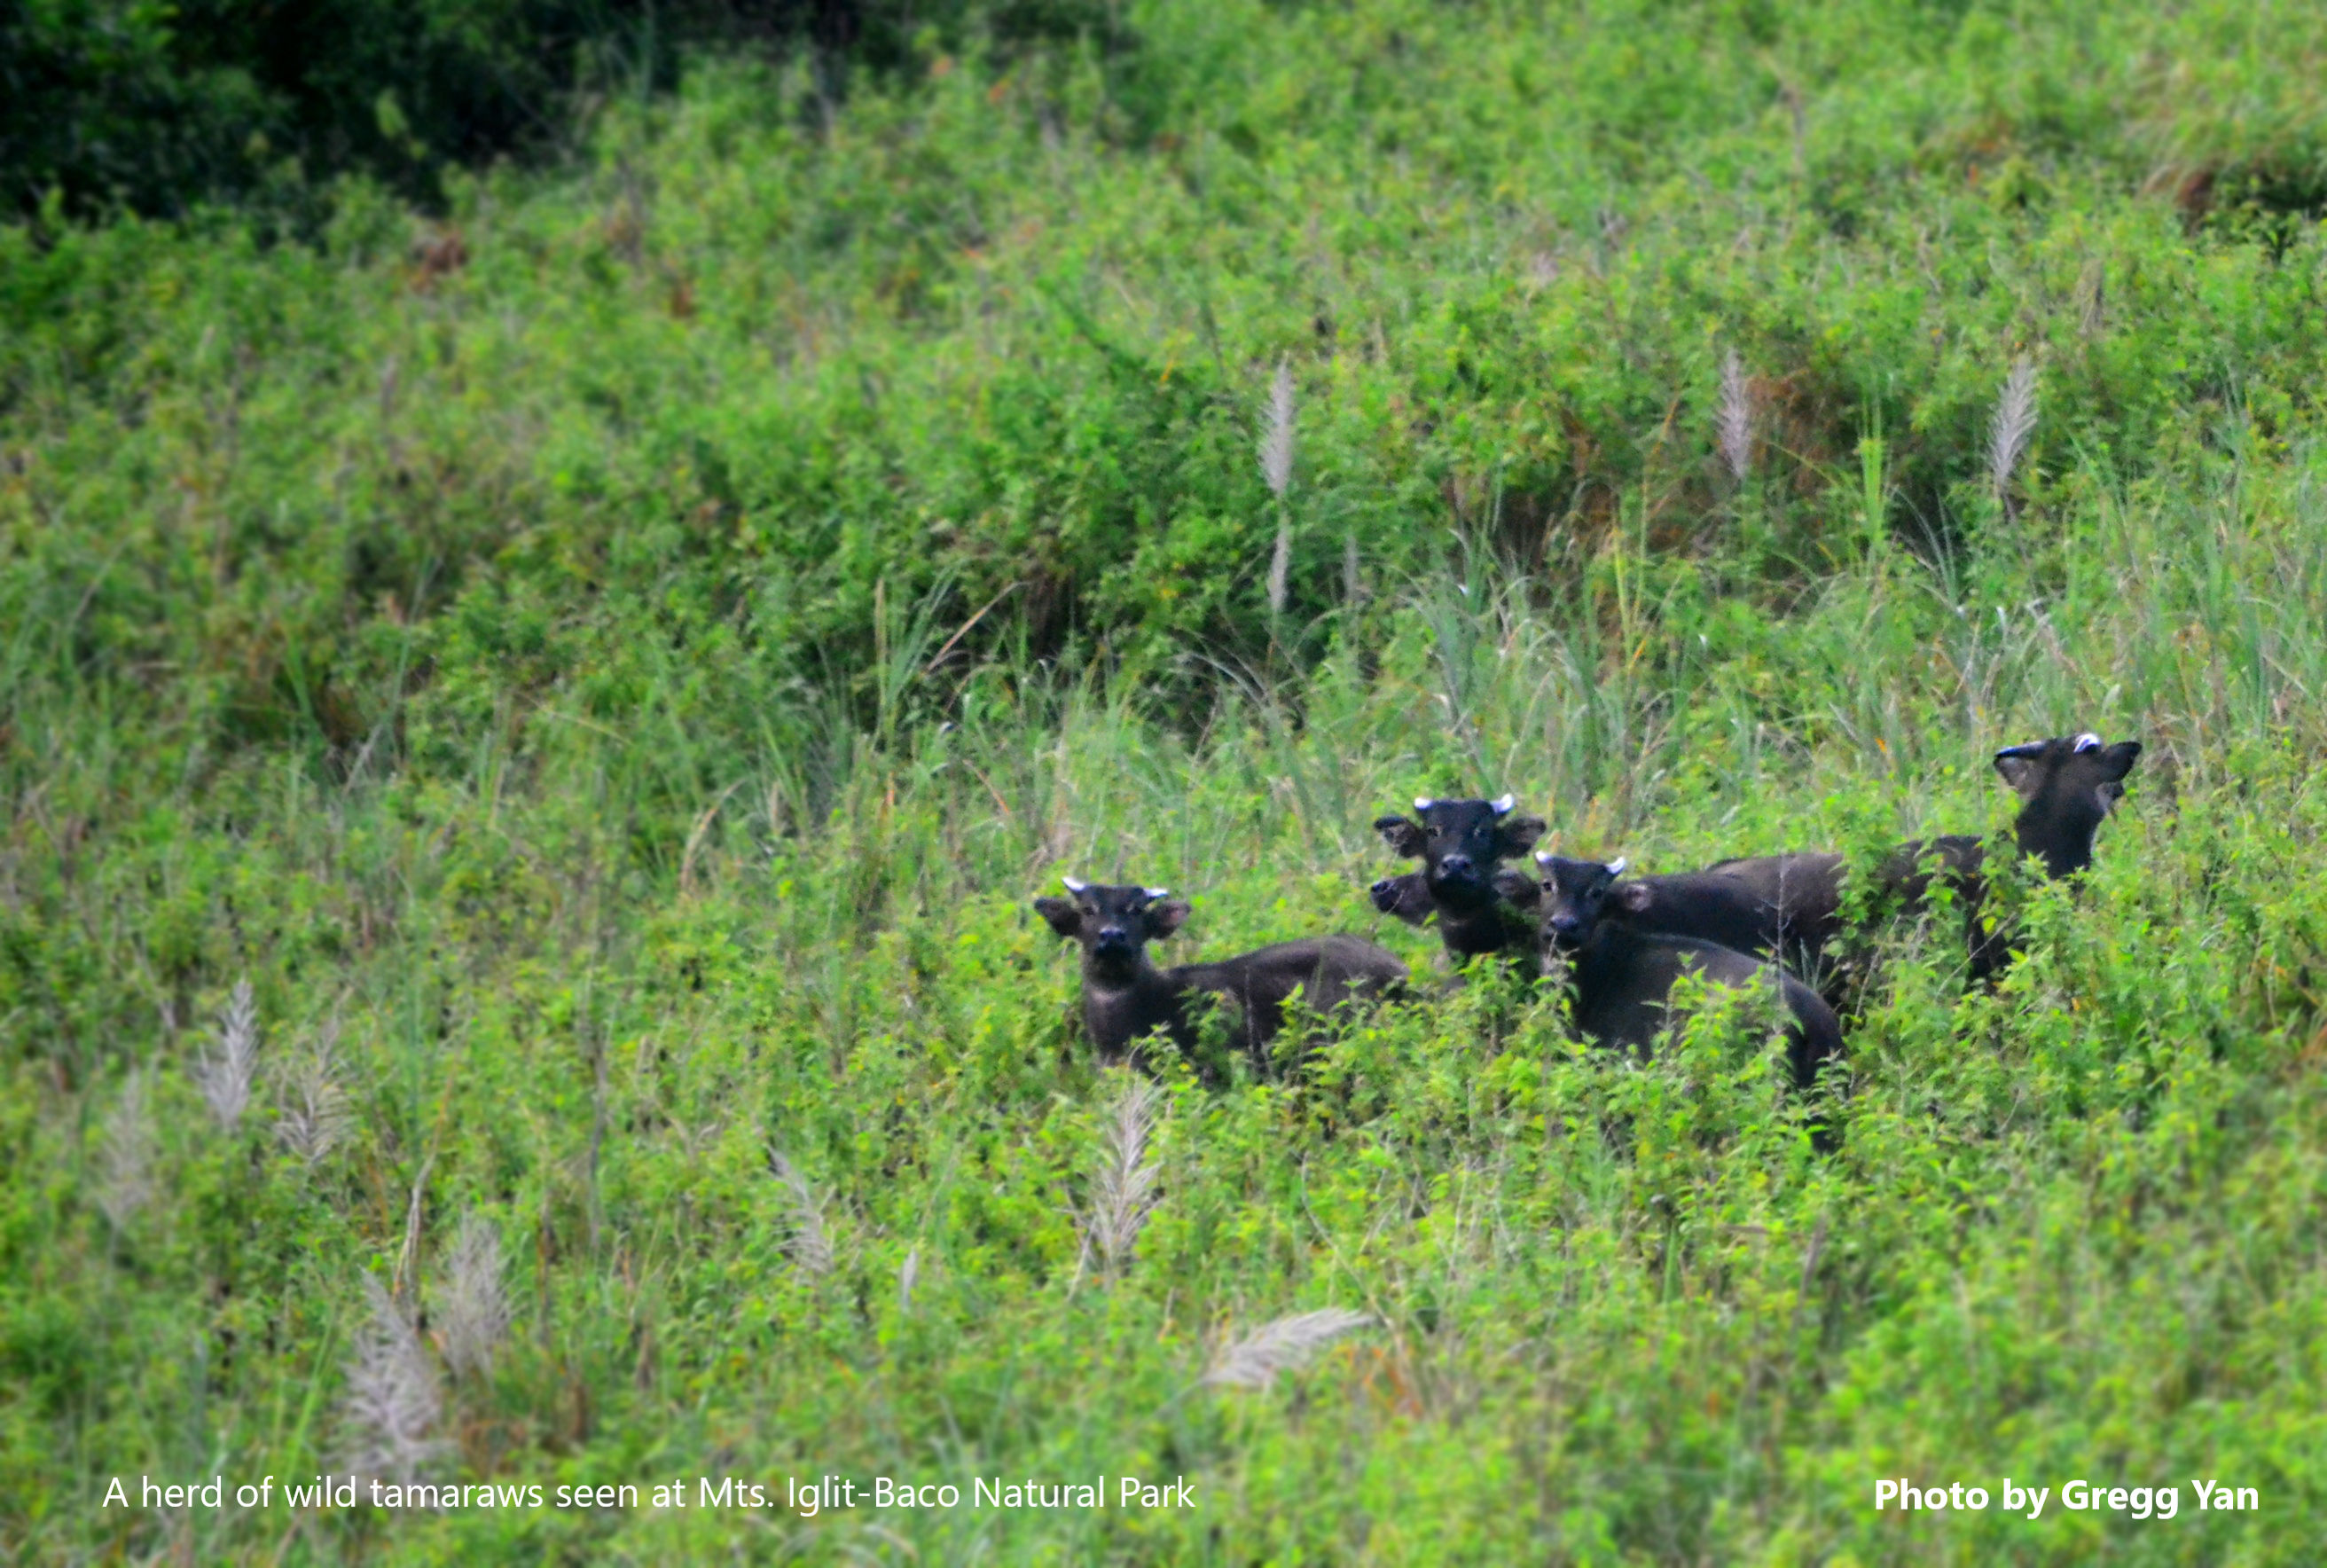 A herd of tamaraws seen in the wild at Mts. Iglit-Baco Natural Park. Photo by Gregg Yan